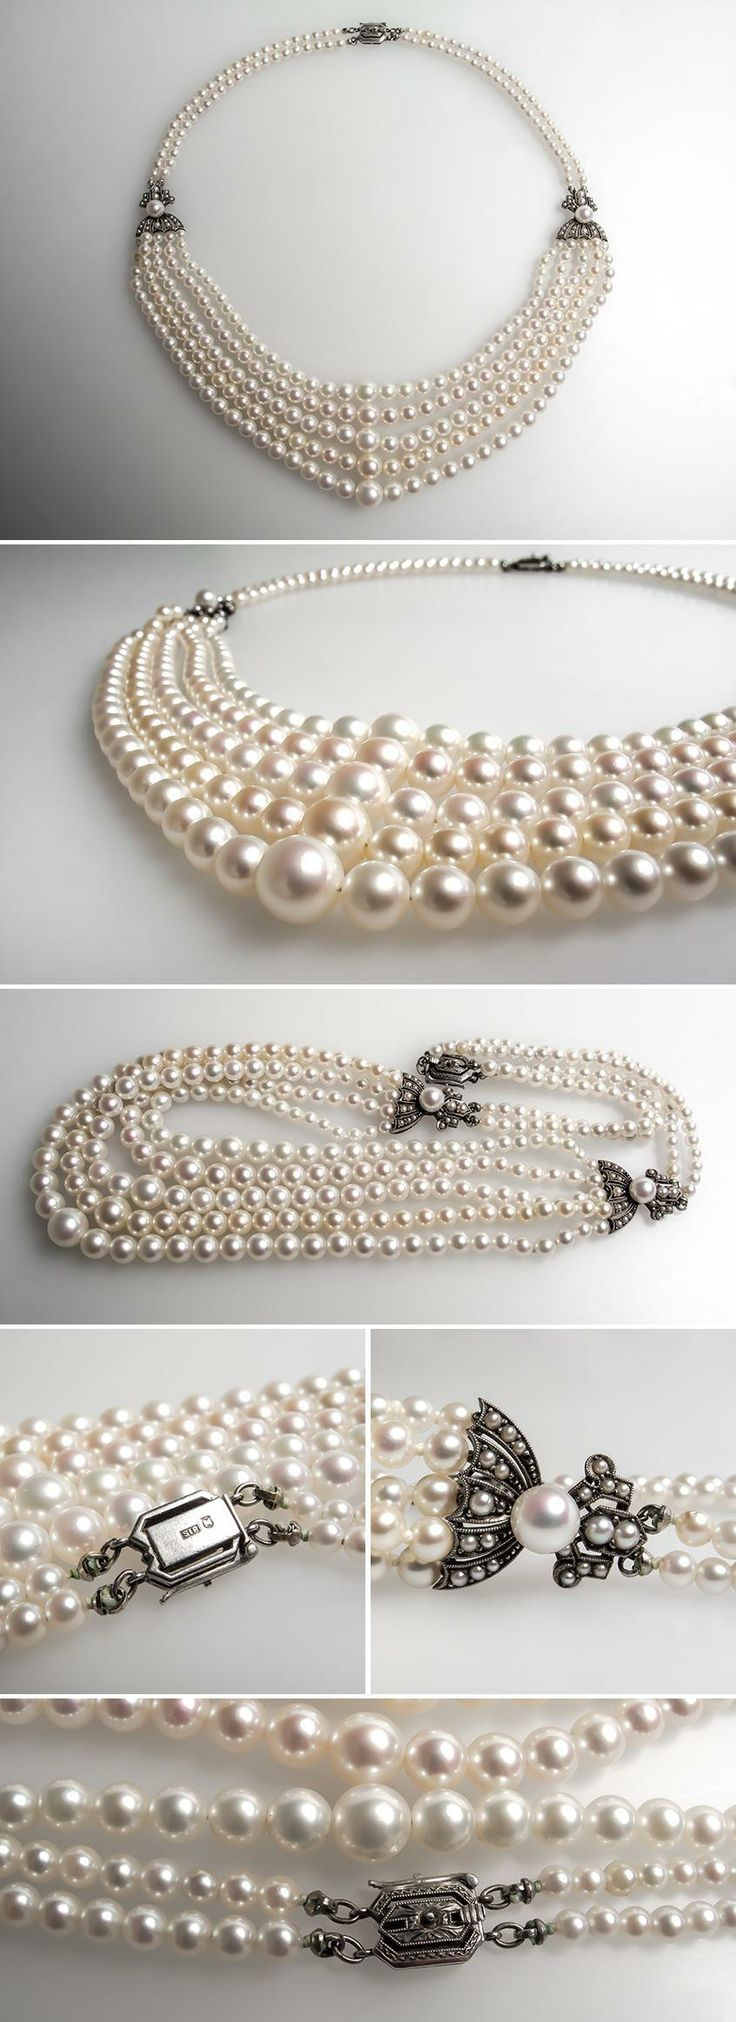 necklace white k main collective mikimoto pearls vestiaire feat